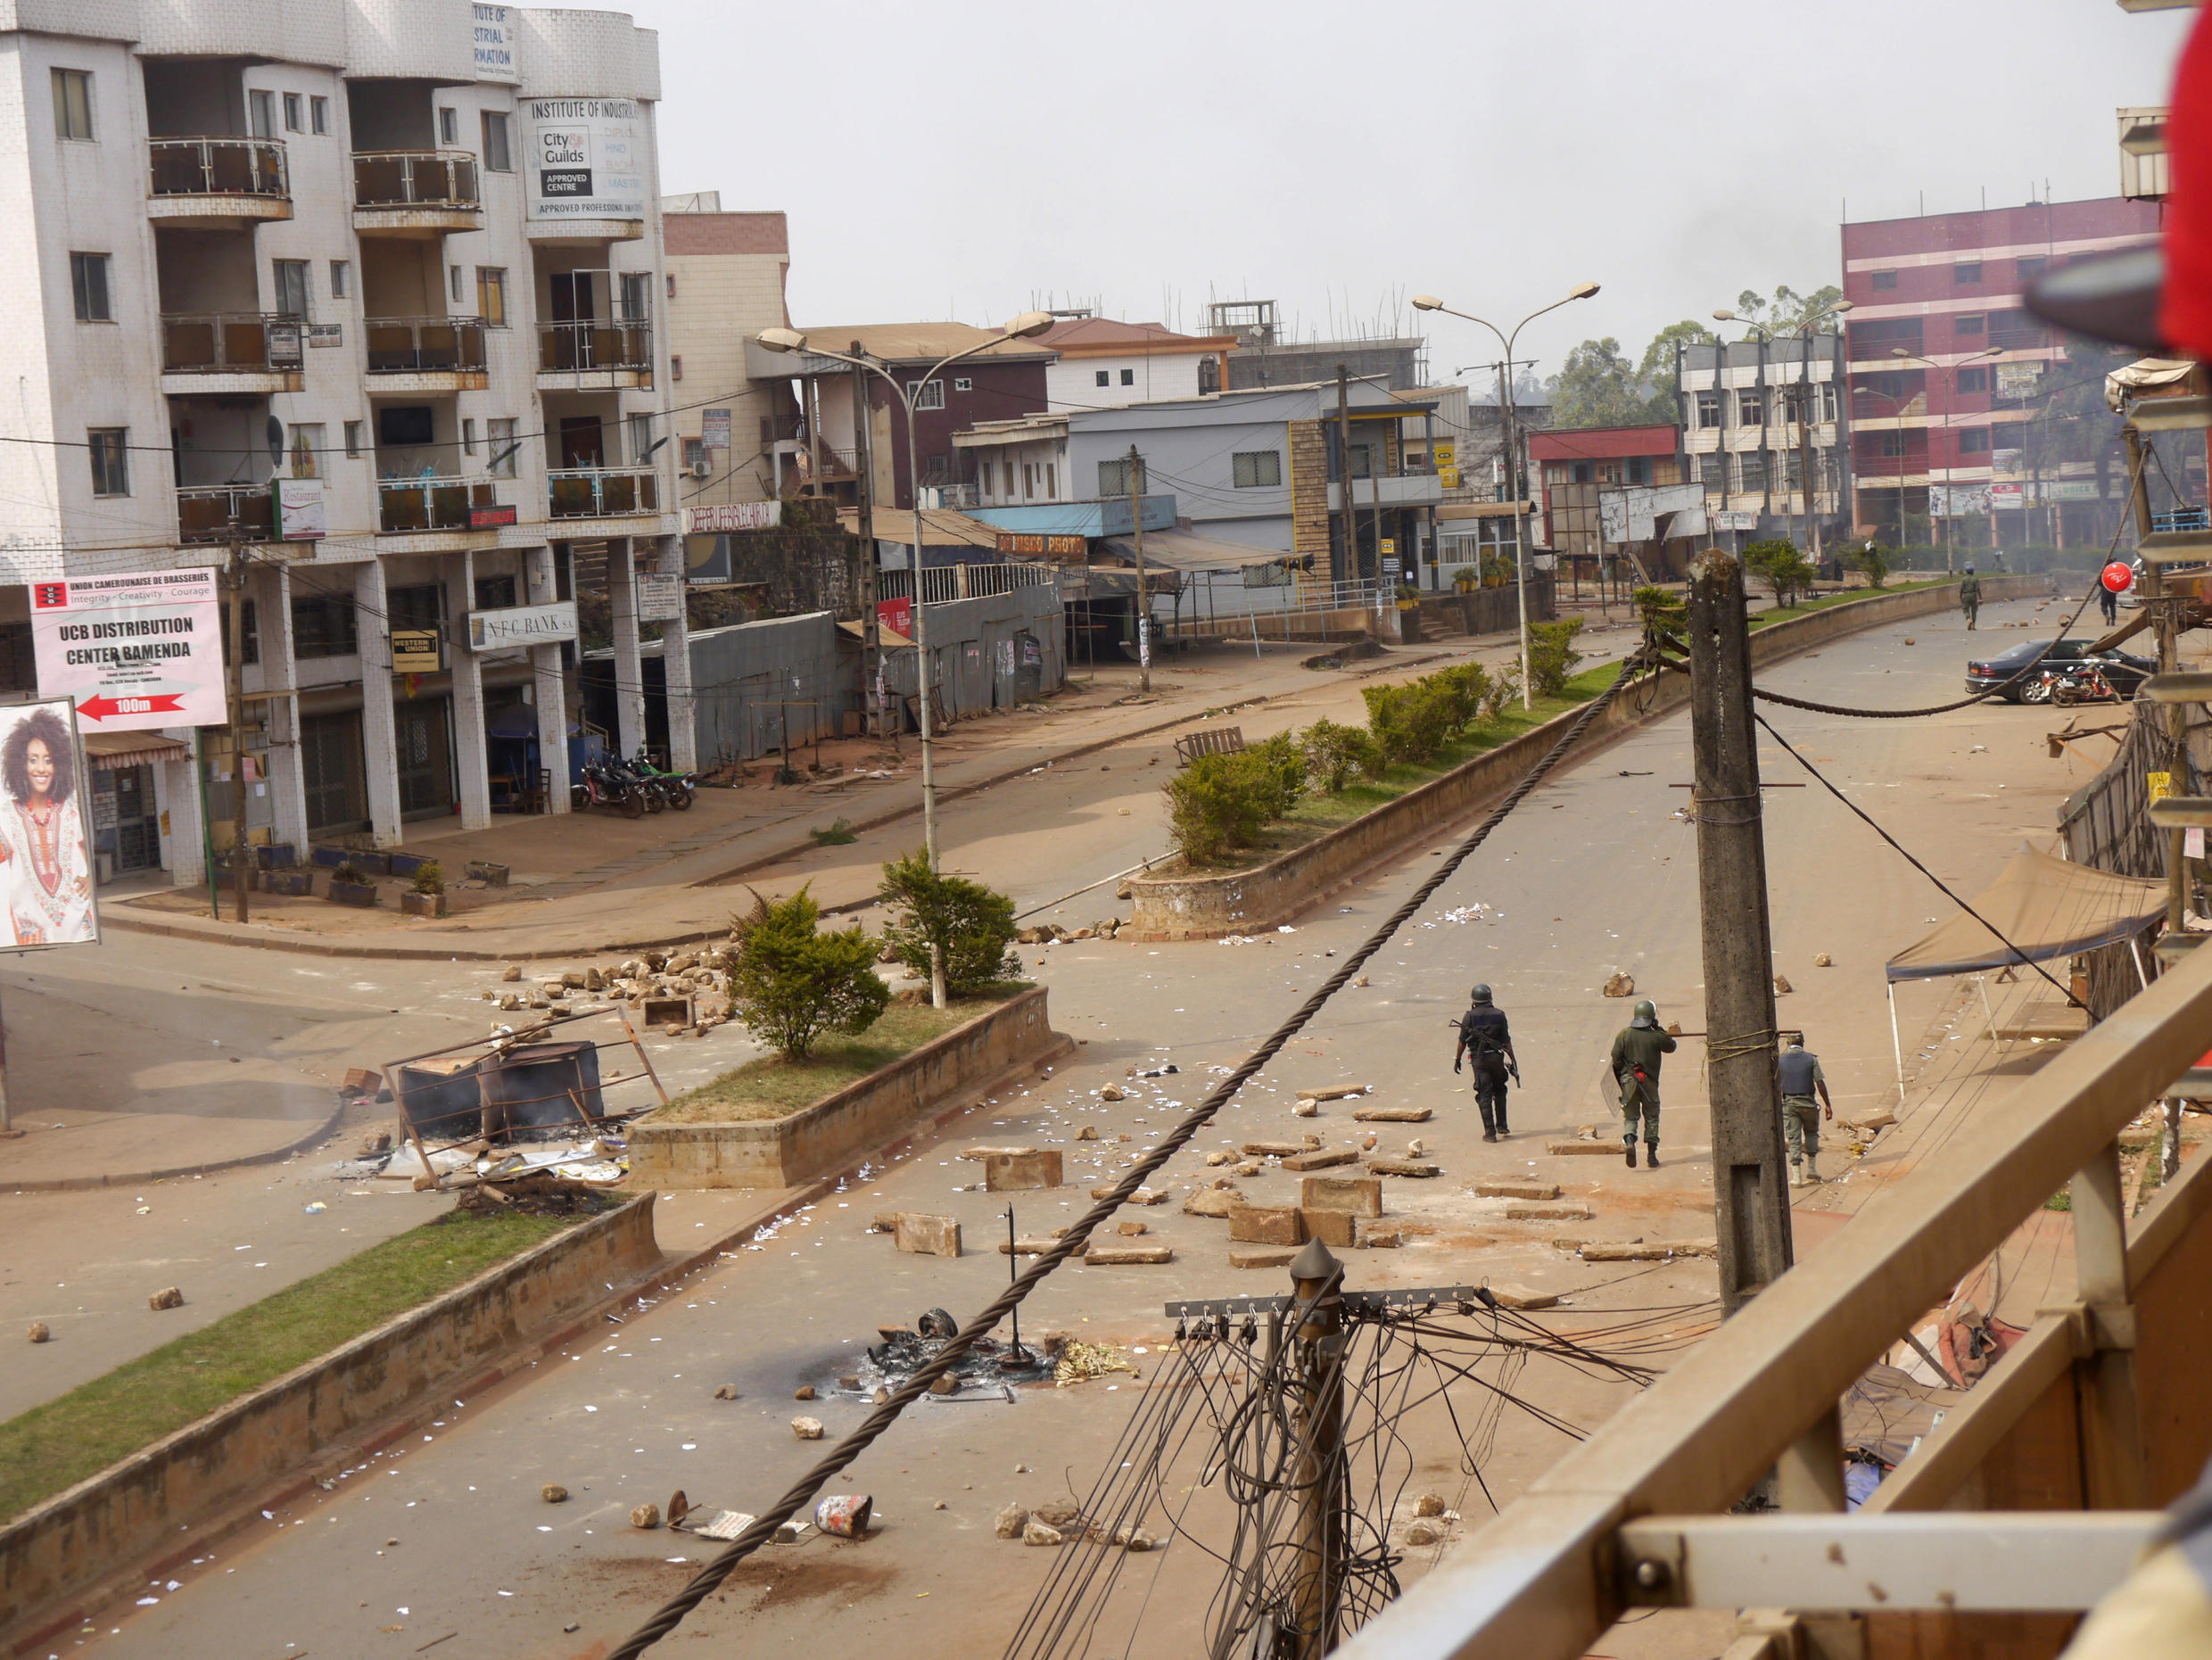 Soldiers clear a road in Bamenda on 8 December 2016.